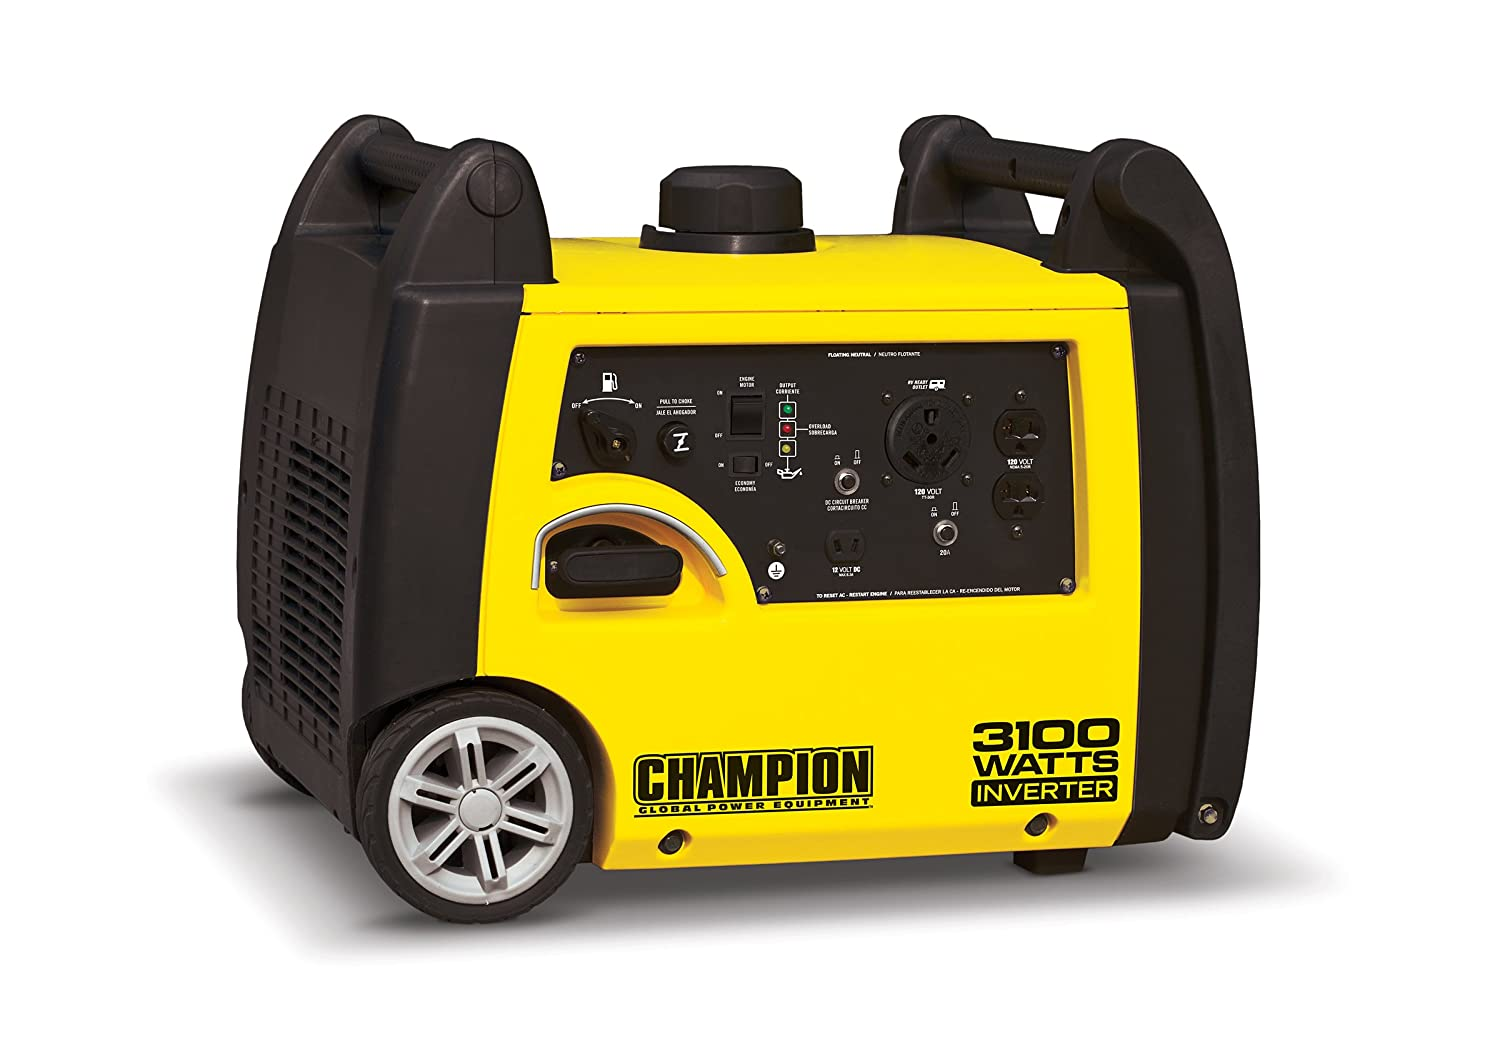 Champion 3100 Watt Rv Ready Portable Inverter Generator Emergency Battery Cutoff Alternator Protection Pelican Parts Garden Outdoor